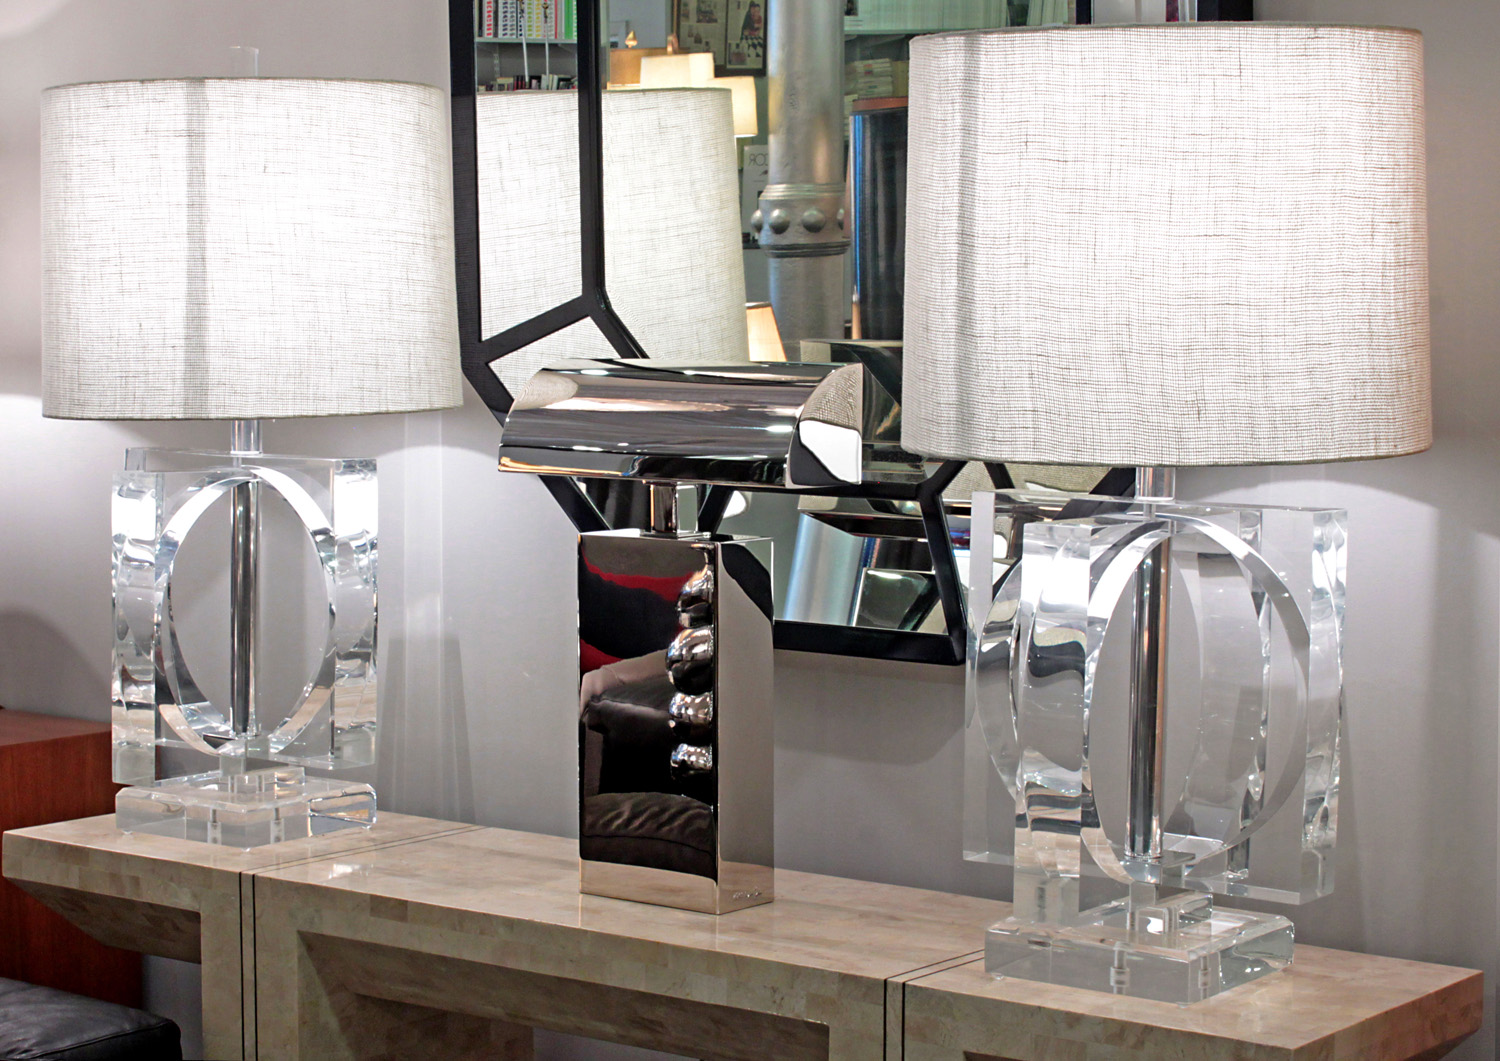 70s 85 large lucite open sphere tablelamps312 detail6 hires.jpg